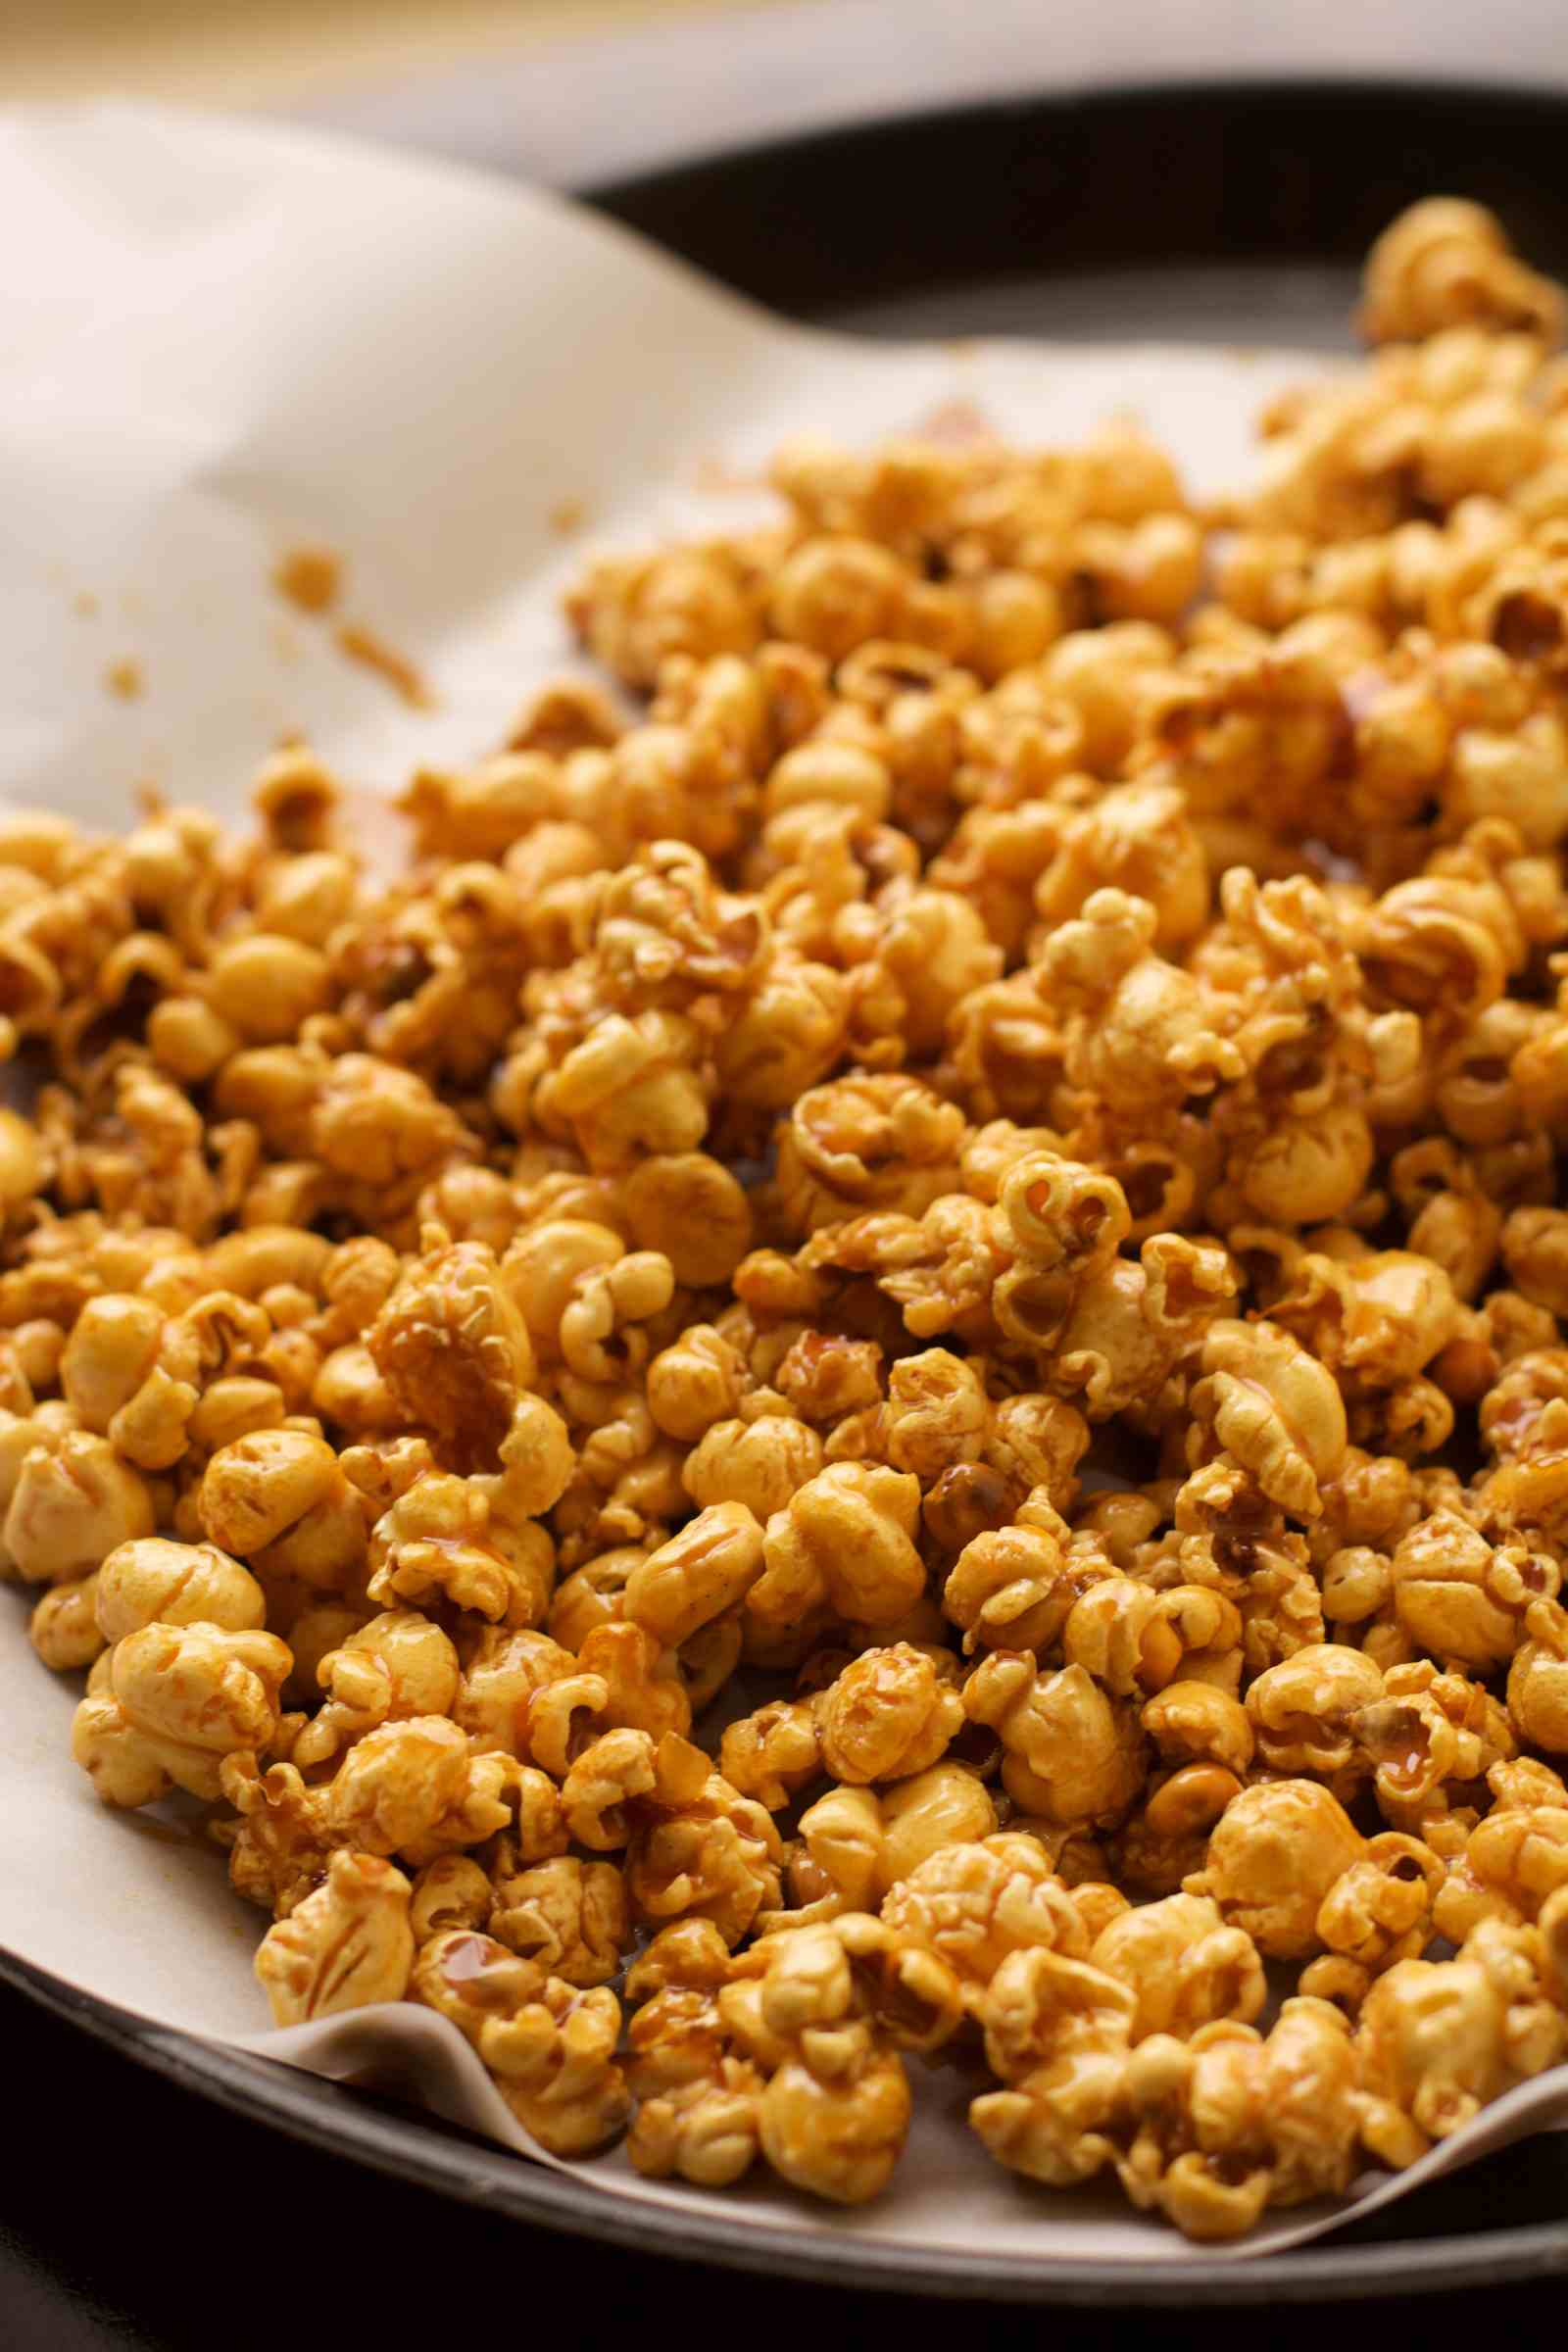 How to cook delicious popcorn at home 17